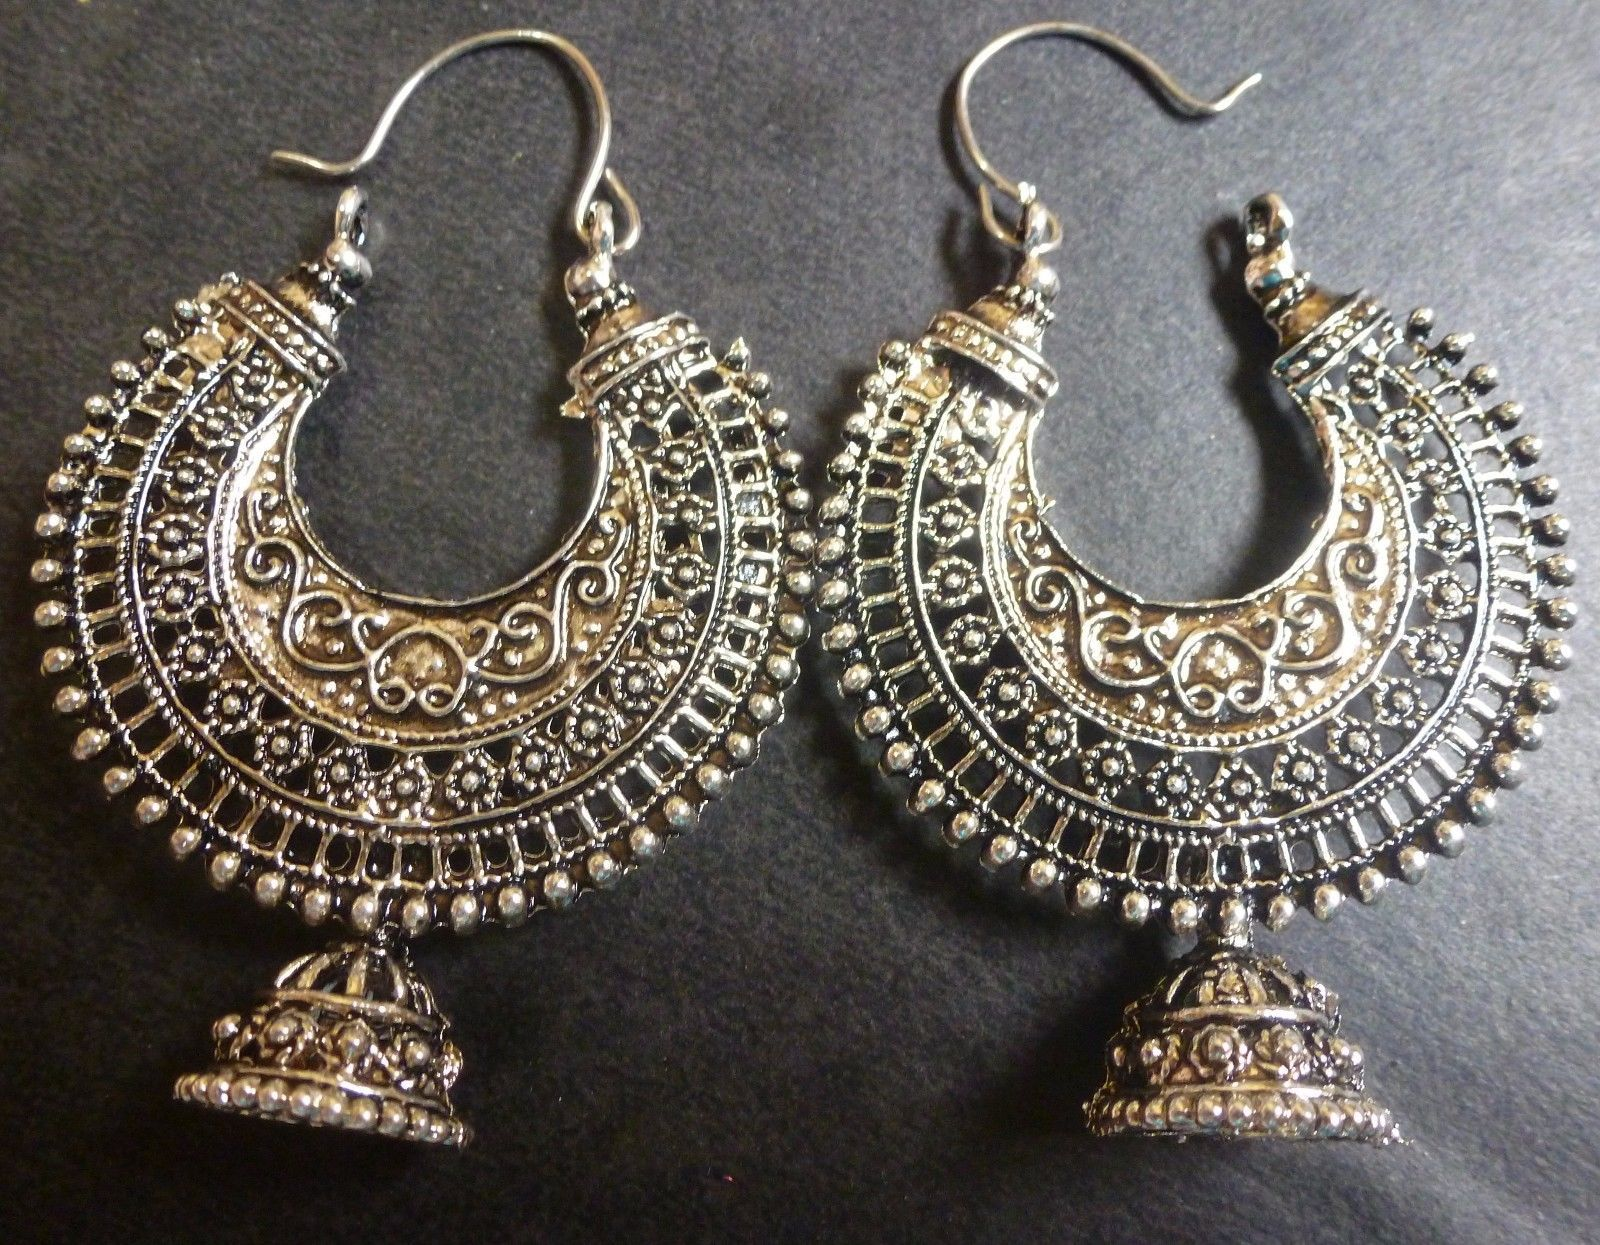 0702a5c09f3b12 Vintage Antique Silver Plated Chand Bali Half Circle Indian Earrings Jhumka  Set.